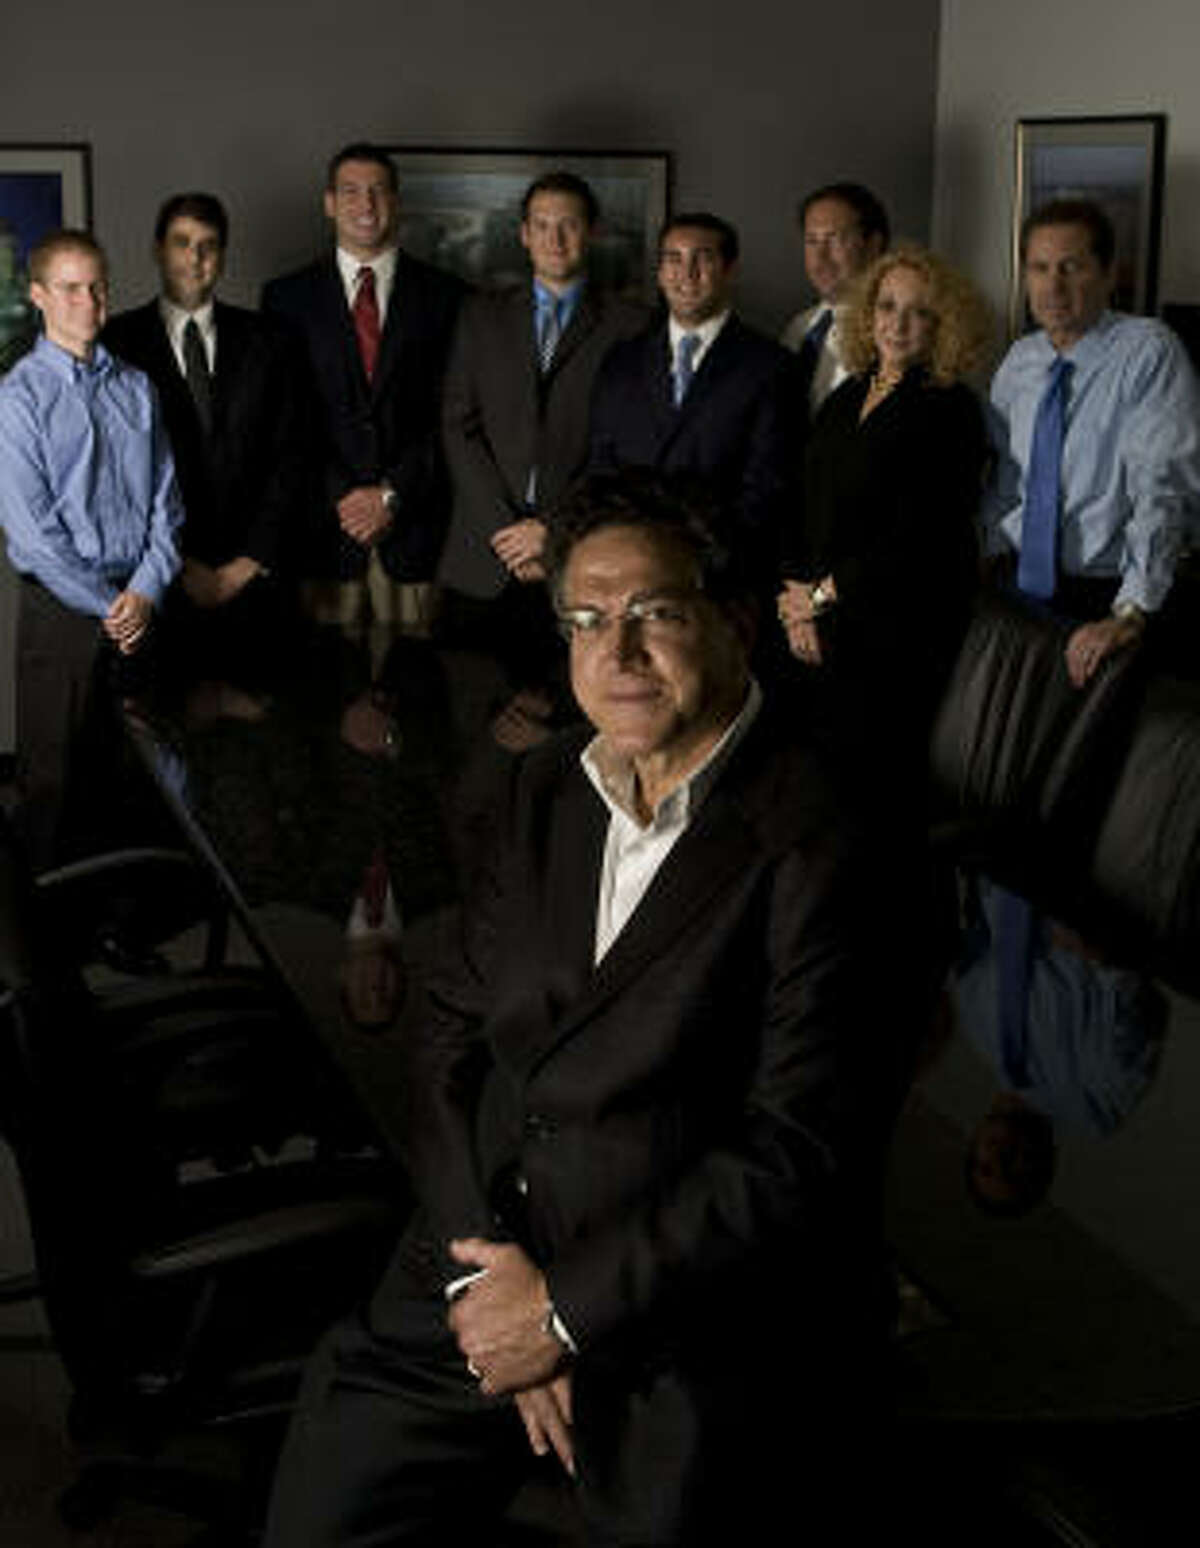 Situs founder Martin Bronstein, foreground, with employees, from left to right, Robert Heckeroth, Maury Bronstein, Will Moss, Ryan Sullivan, John Wall, Andy Uschold, Ginger Simon and Randall Tuller. What started more than 20 years ago as a three-man brokerage firm has grown to 221 employees and offices worldwide.